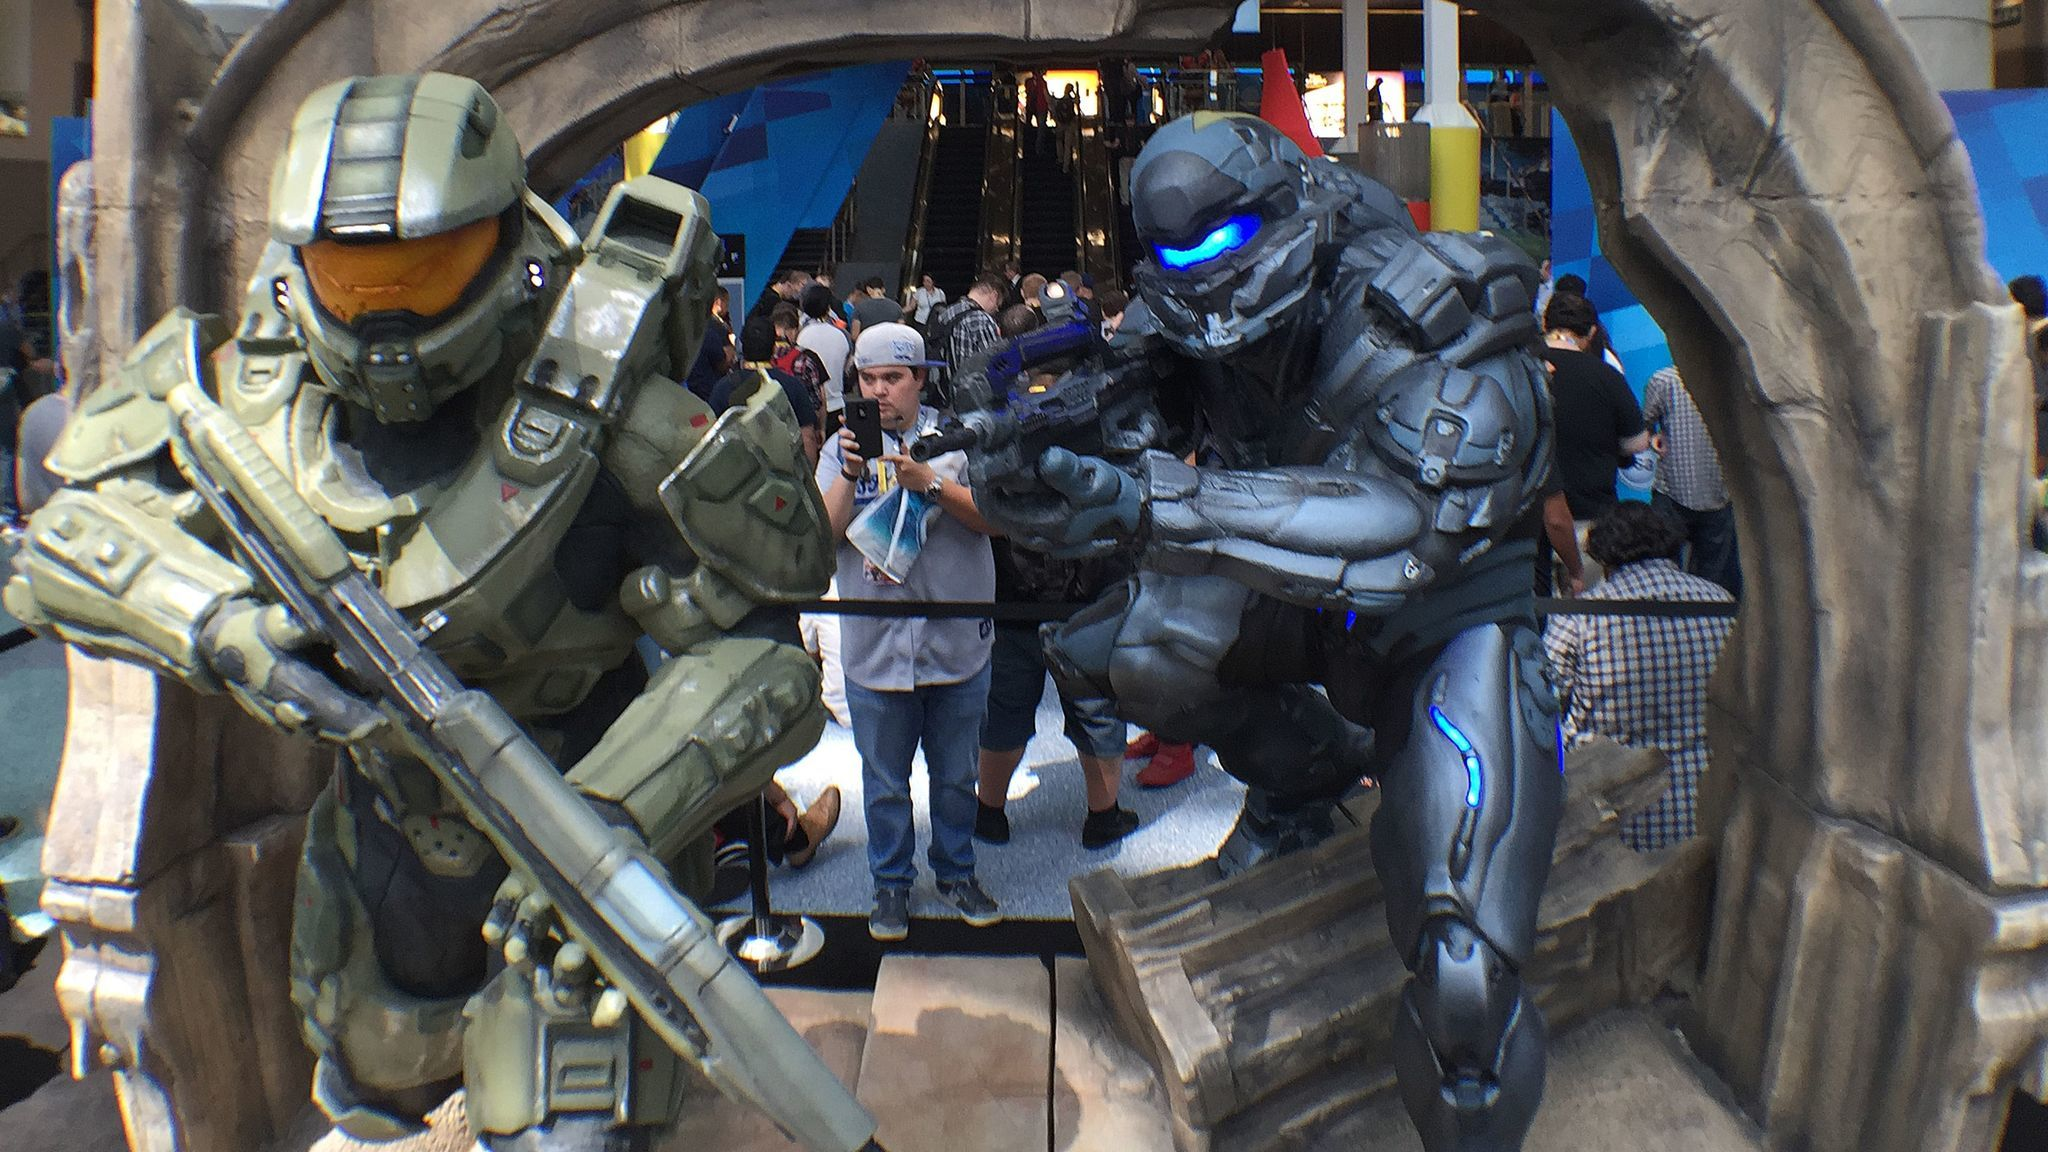 """A display for """"Halo 5: Guardians"""" at a video game convention in Los Angeles."""